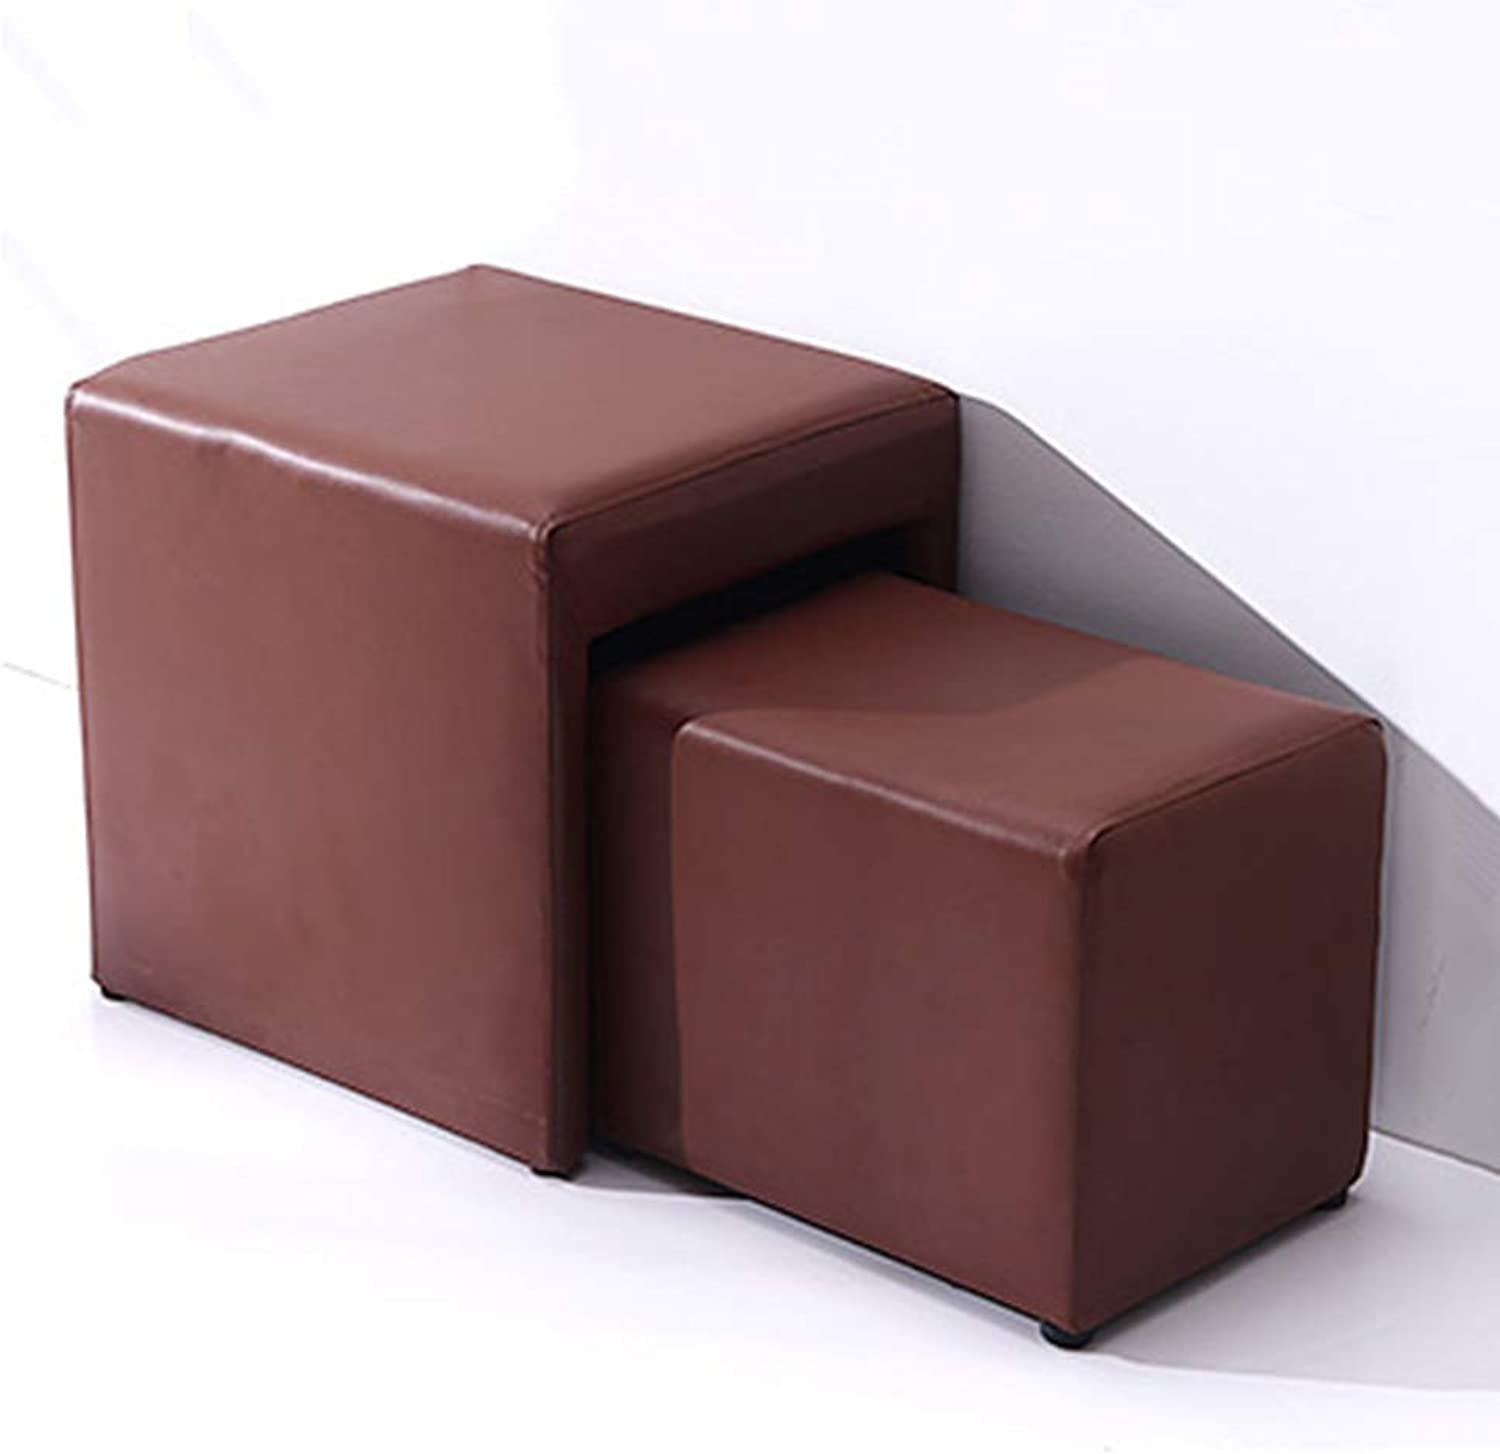 Sofa Stool Waterproof PU Square Creative Multifunctional Combination Coffee Stool (color   Brown)